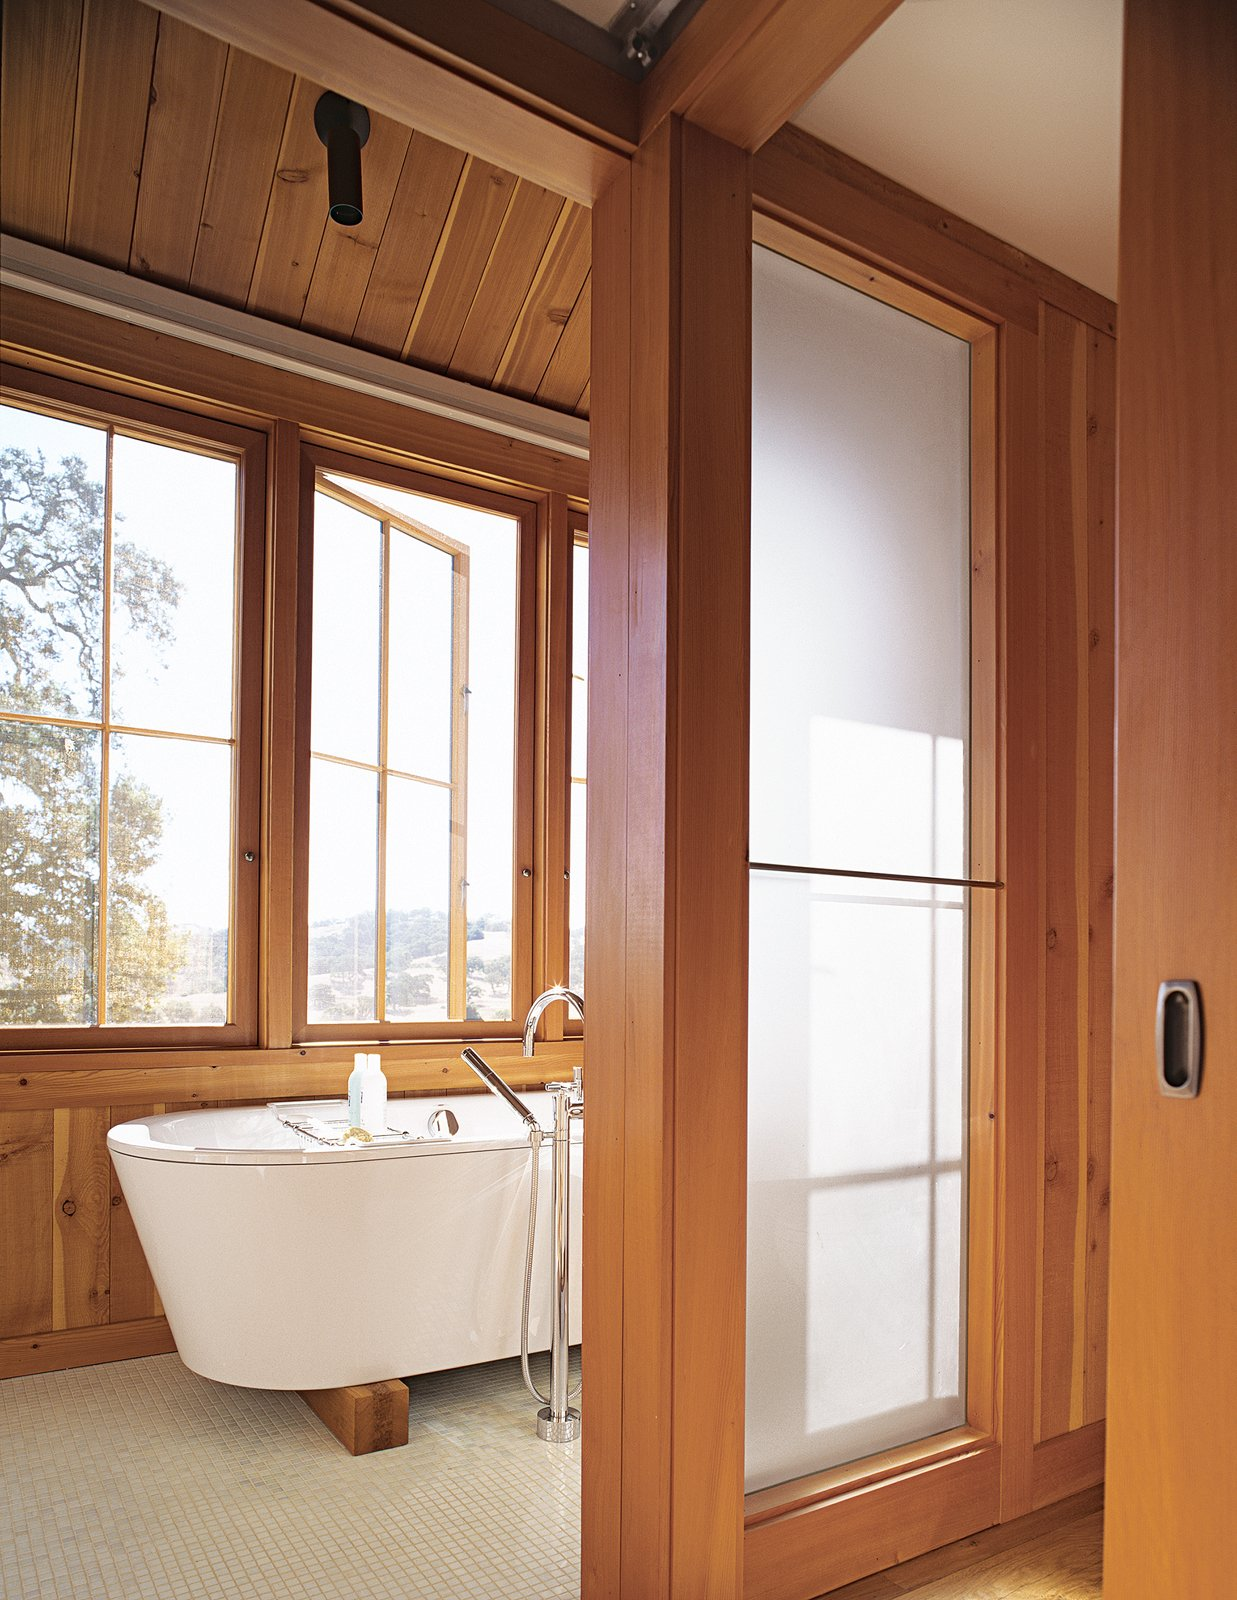 The master bath commands one of the best views in the house.